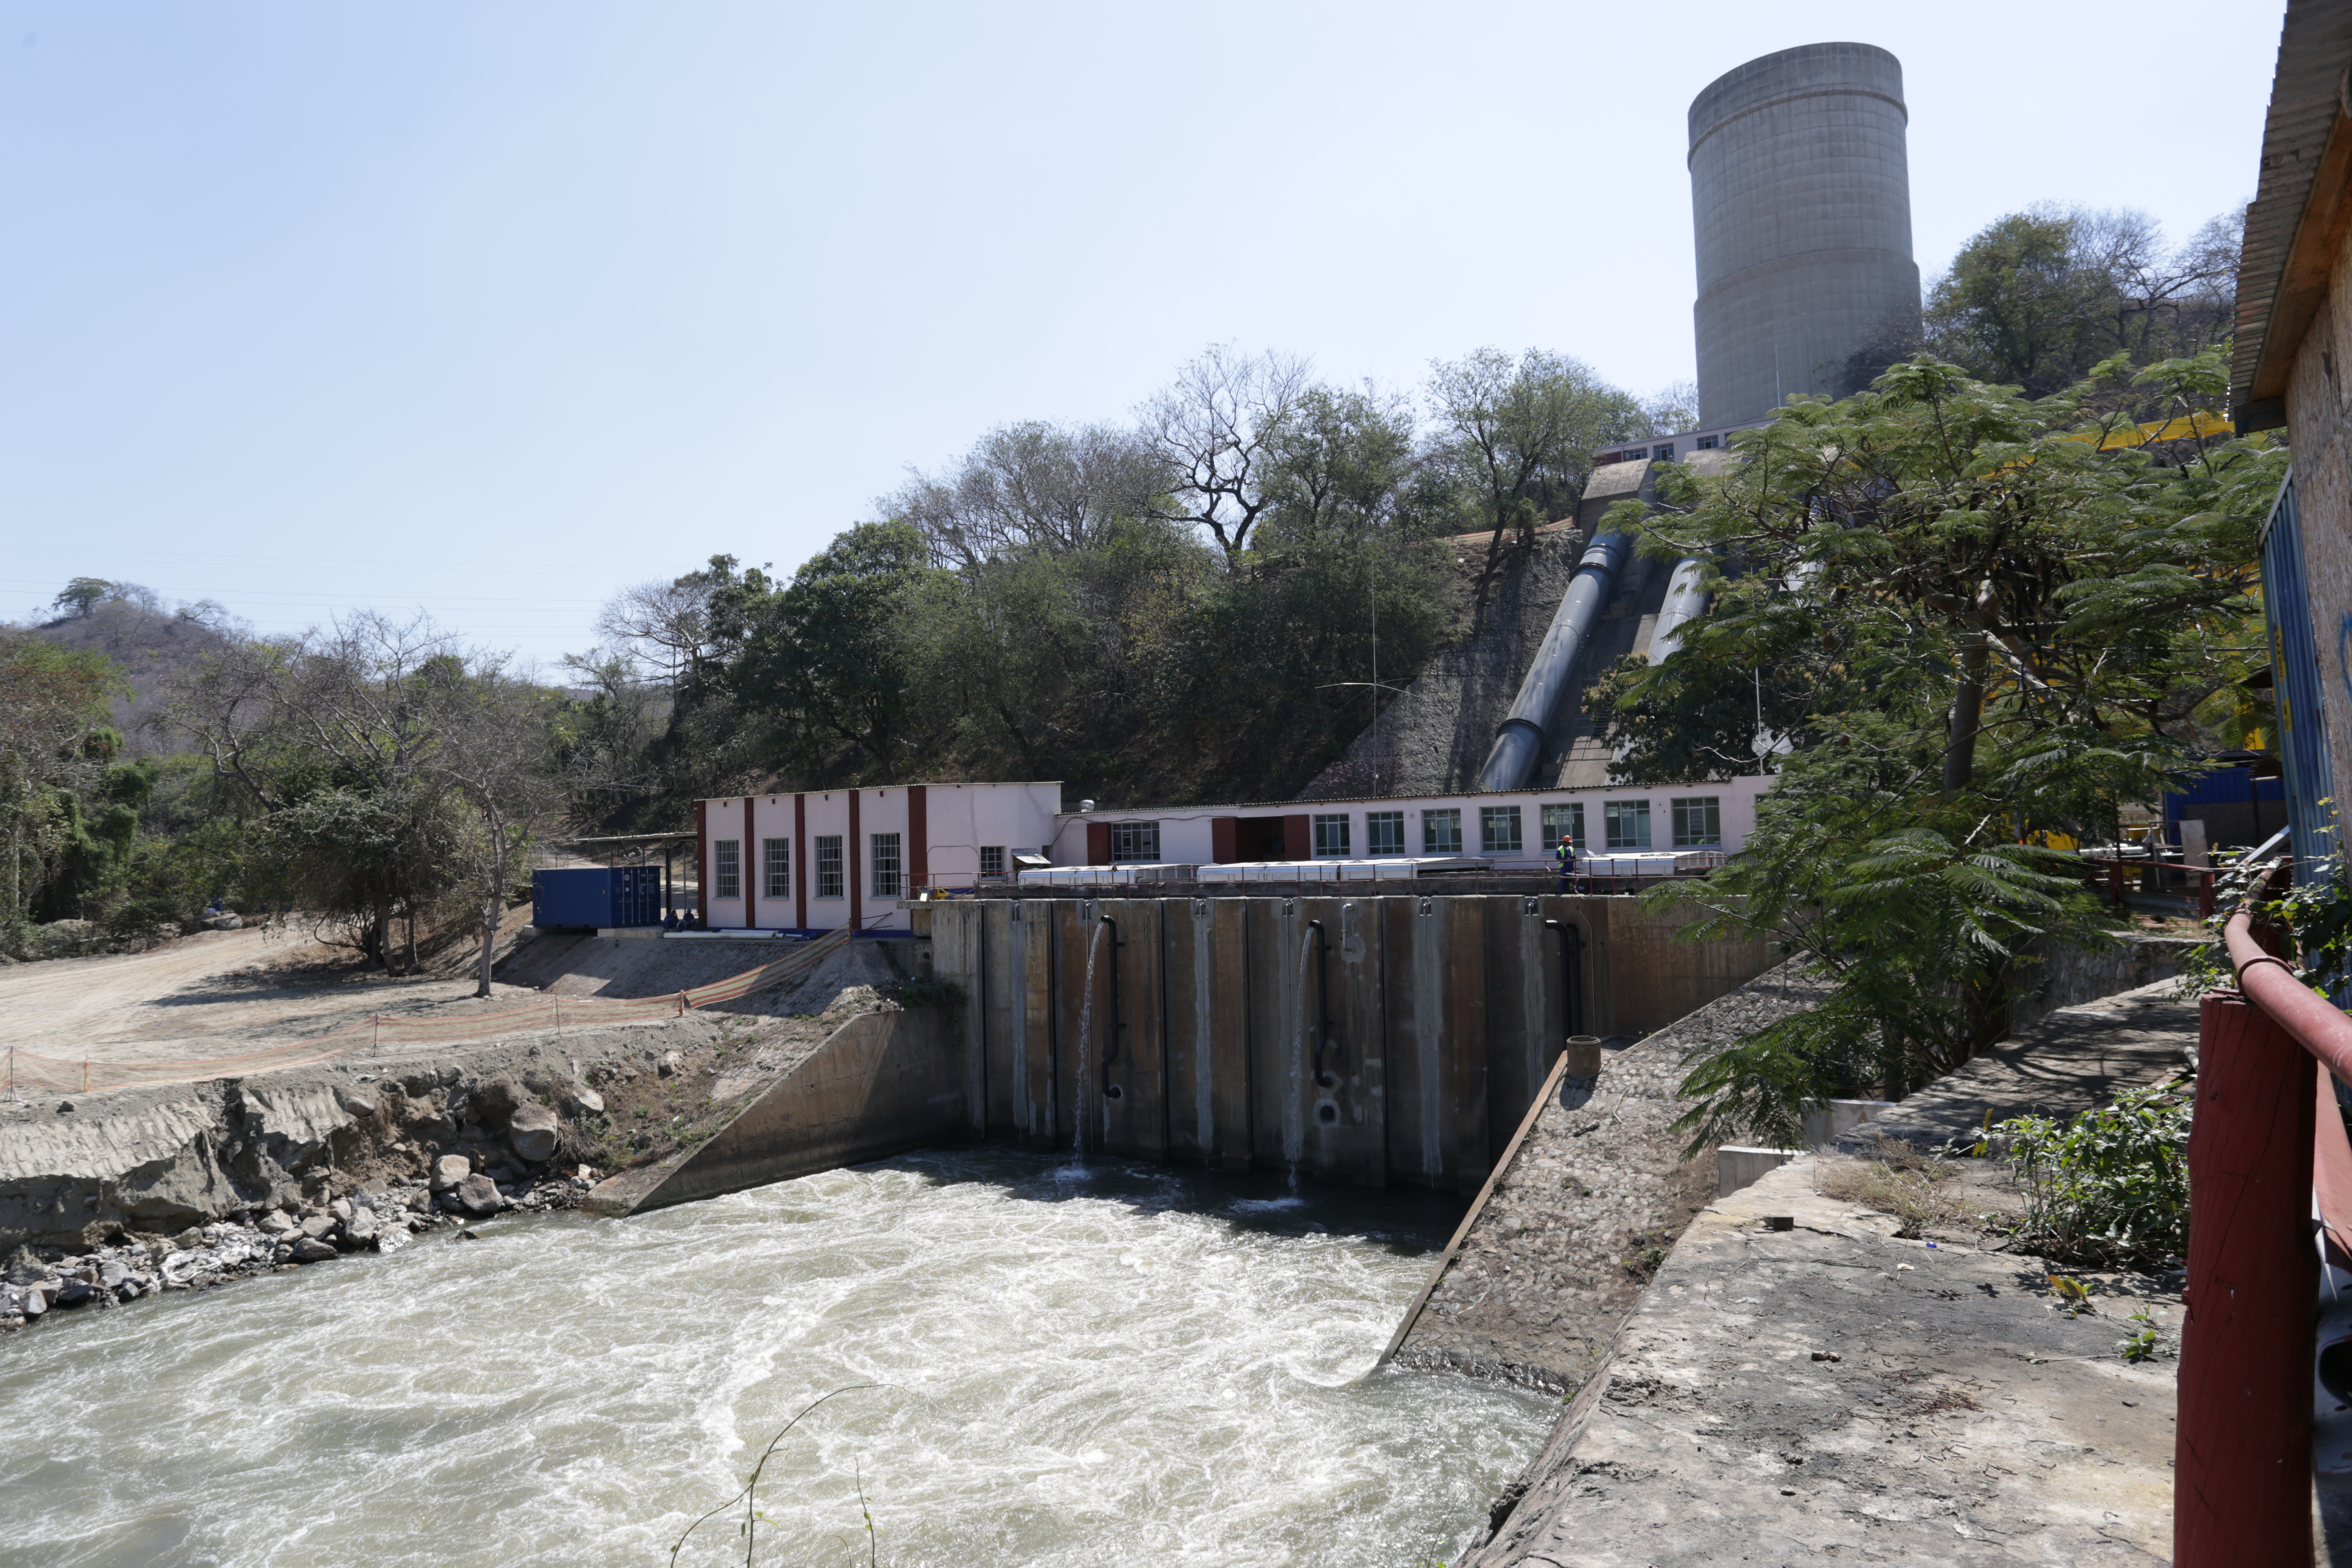 Landscape photograph of the Nkula A hydropower damn